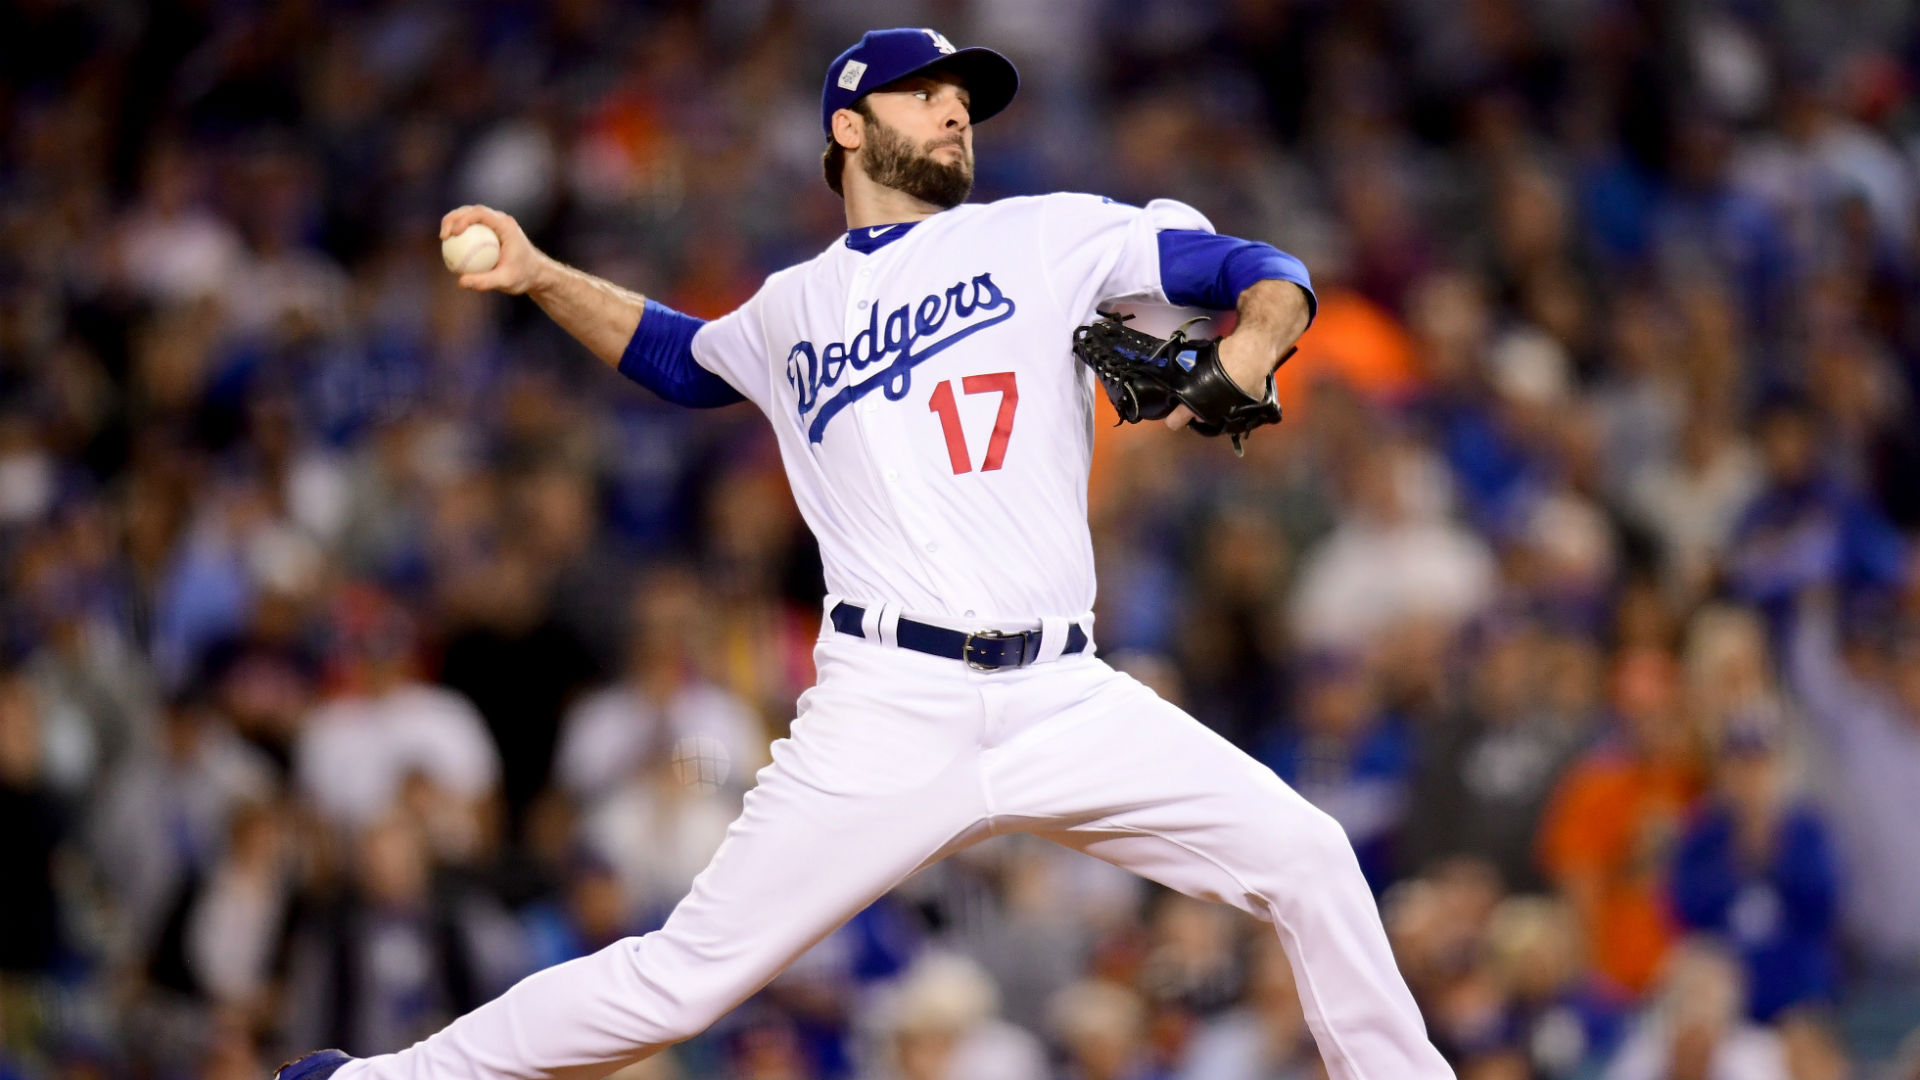 Cubs agree to terms with former Dodgers reliever Brandon Morrow